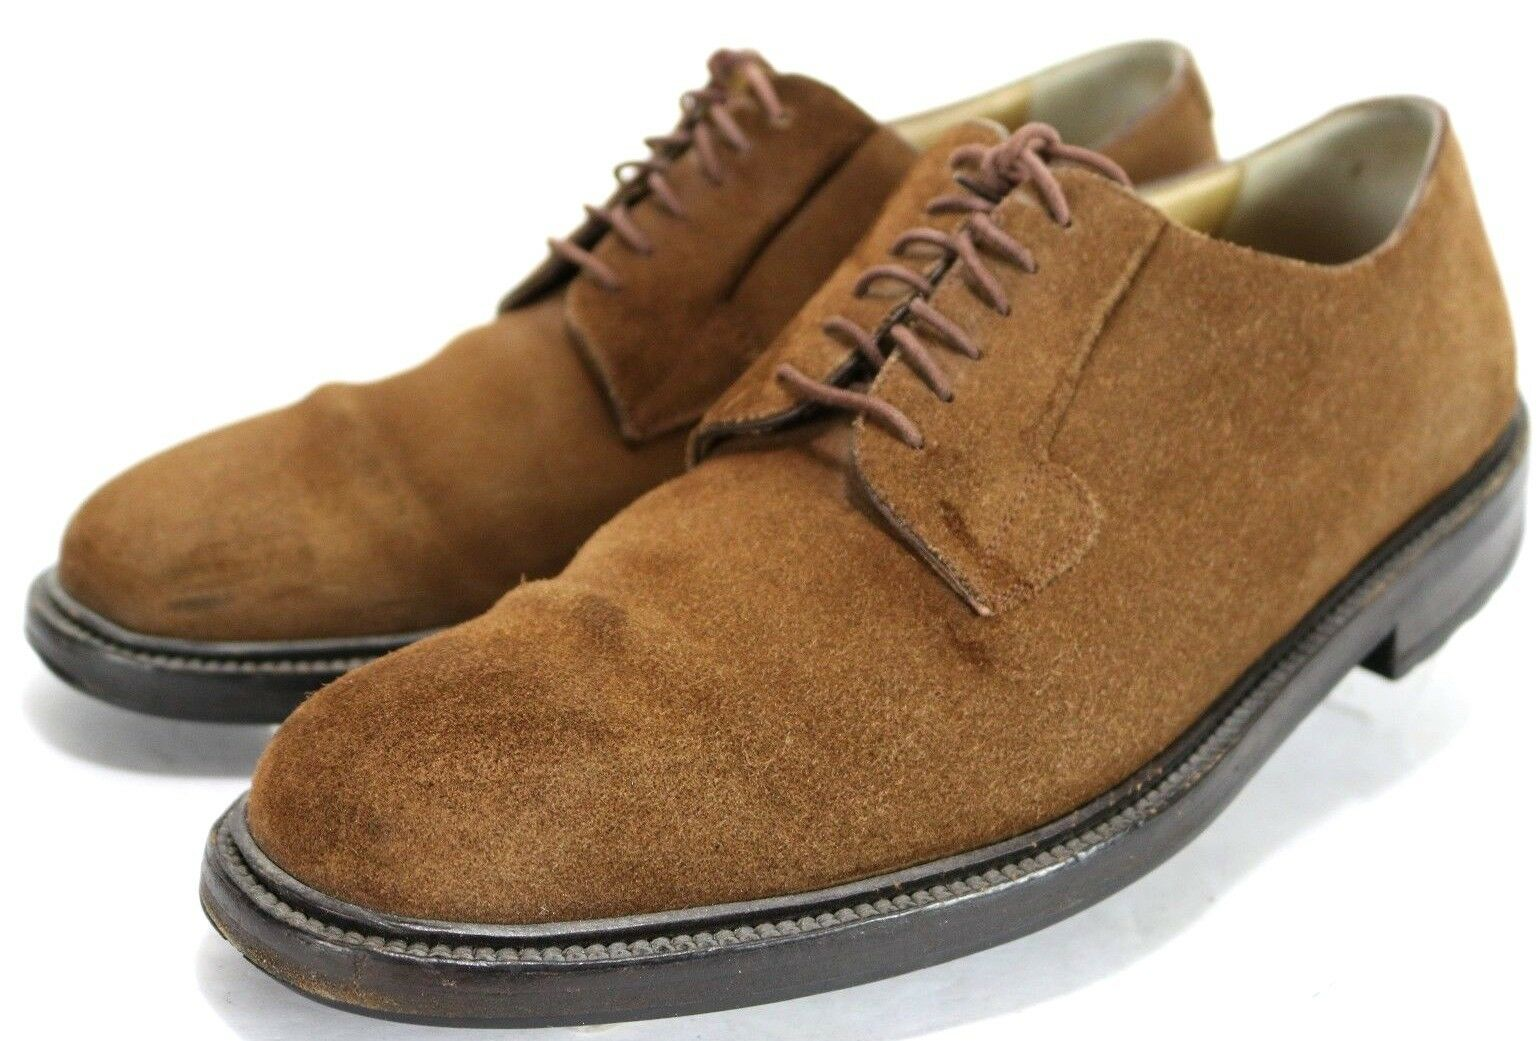 Cole Haan Men's  140 Suede Oxfords shoes Crafted In  Size 9.5 Vibram Brown